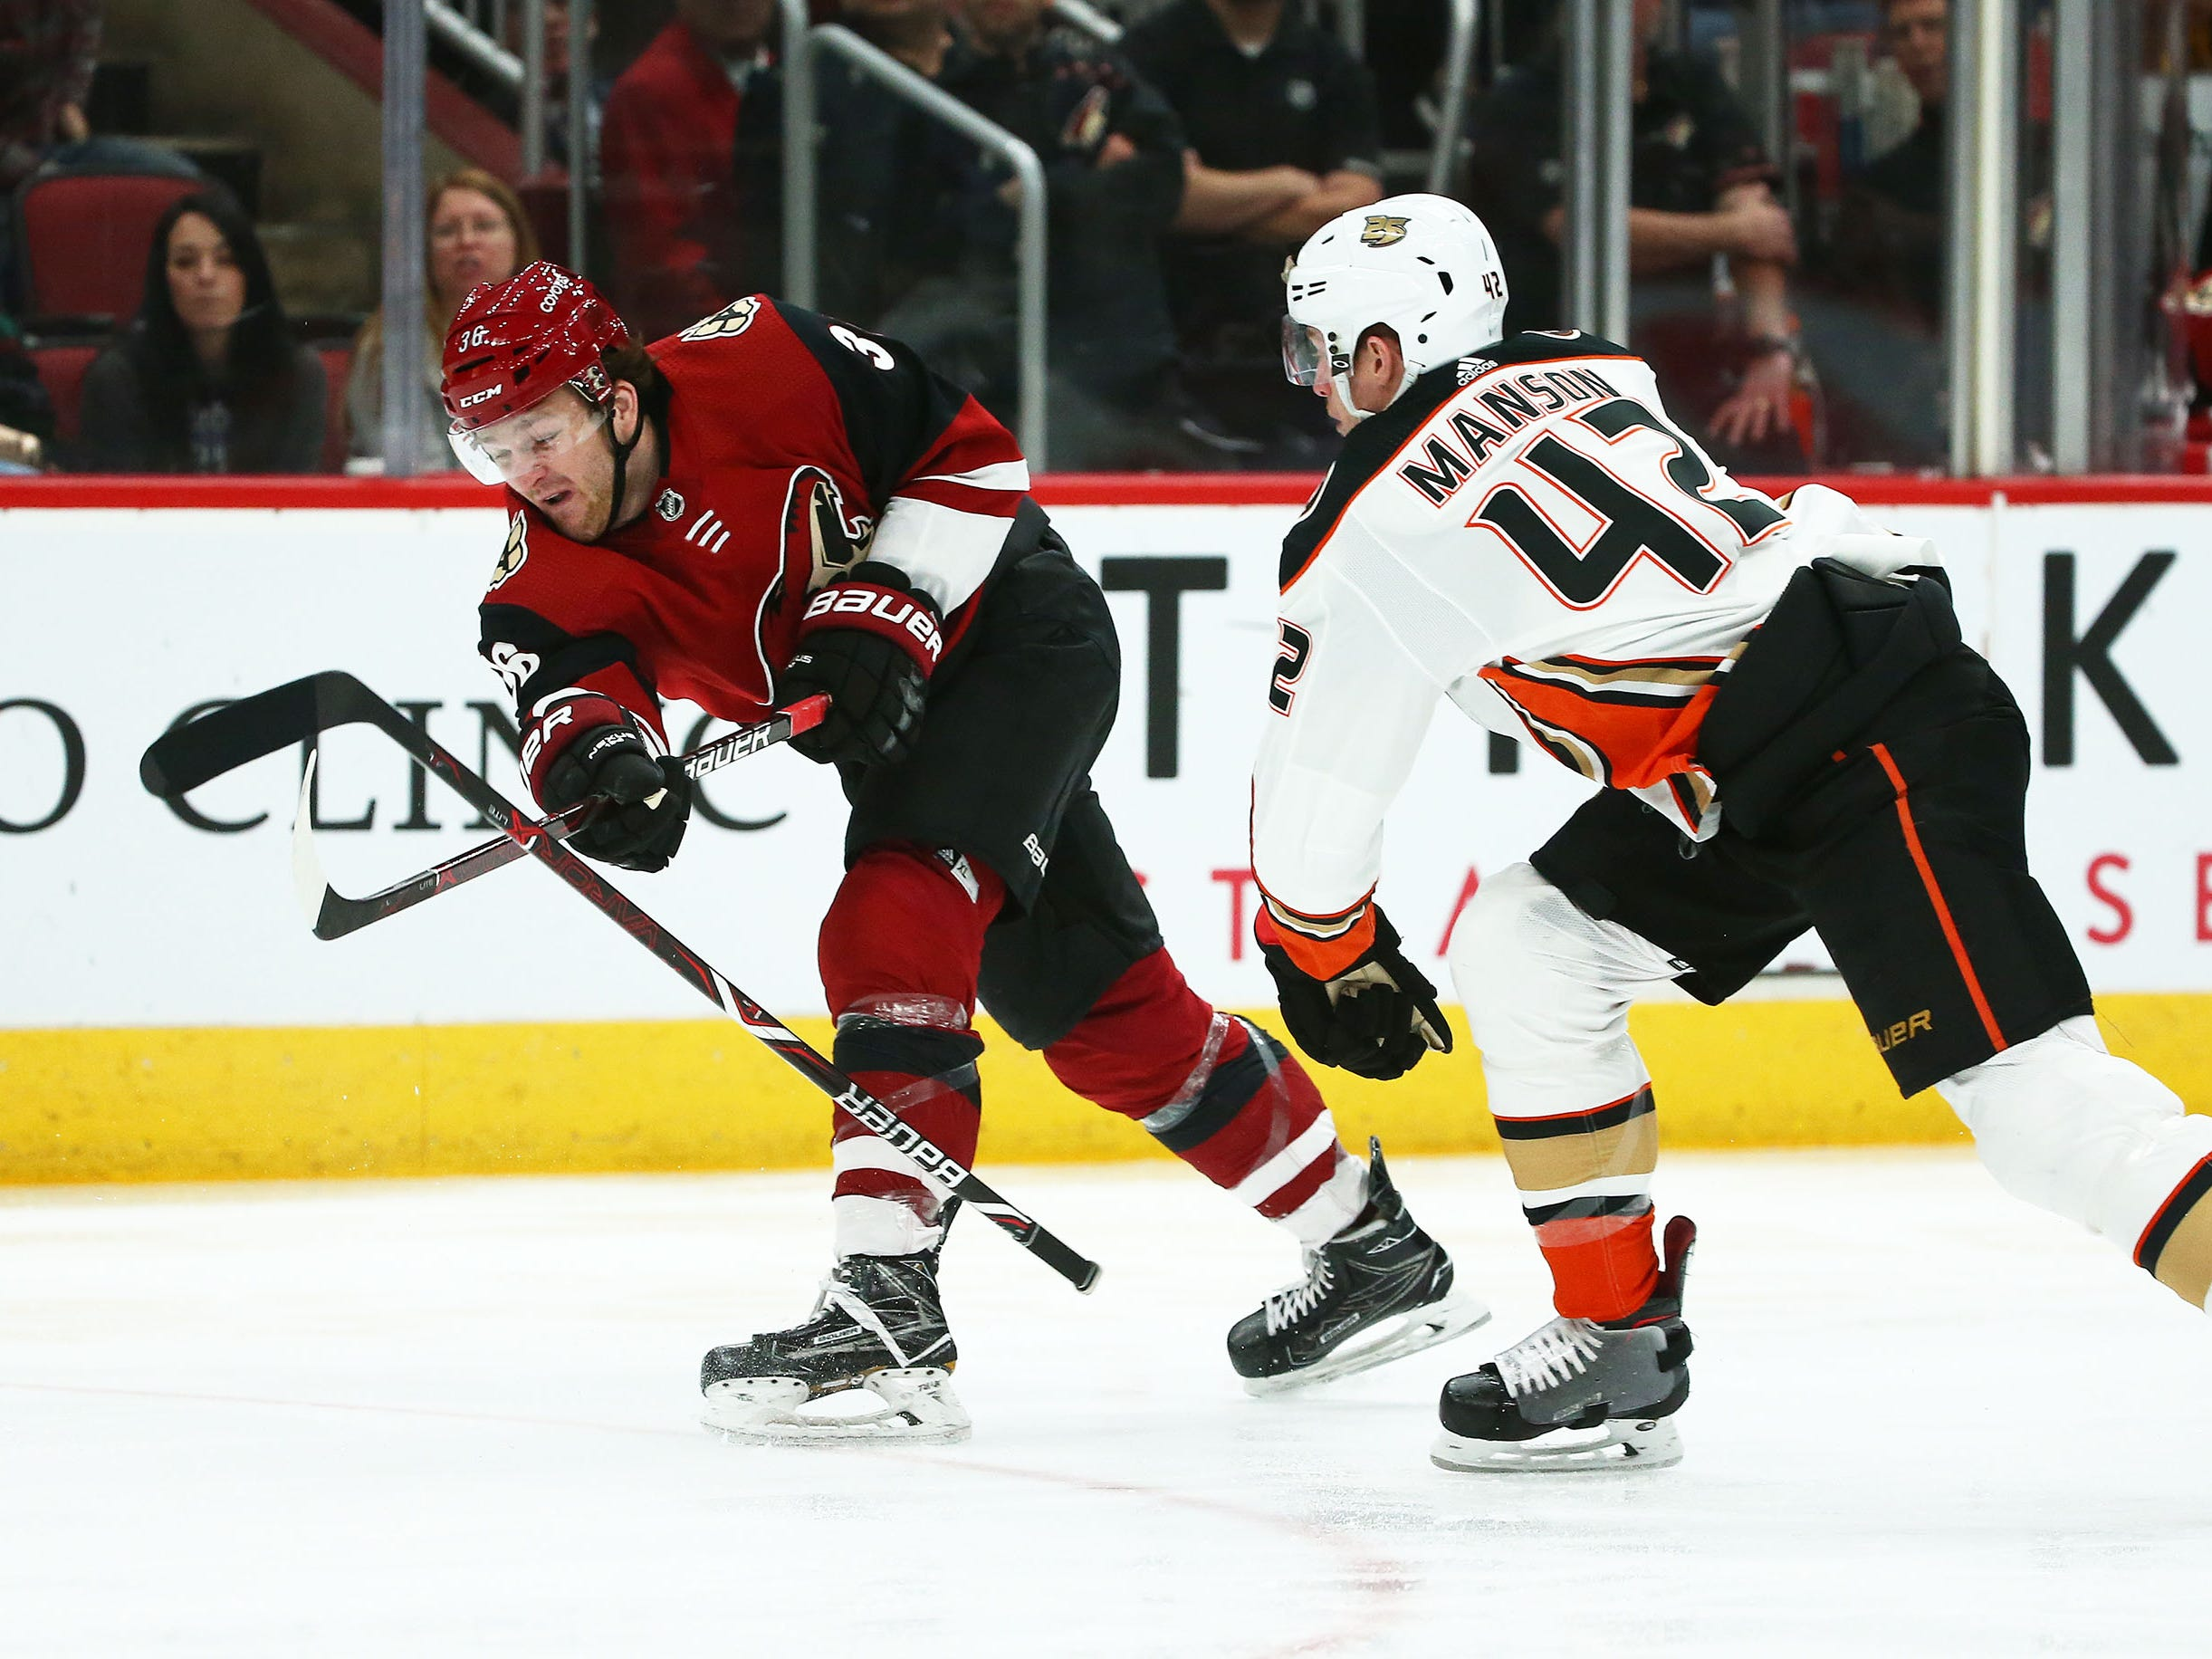 Anaheim Ducks defenseman Josh Manson (42) loses his stick against Arizona Coyotes right wing Christian Fischer (36) in the second period on Mar. 5, 2019, at Gila River Arena in Glendale, Ariz.